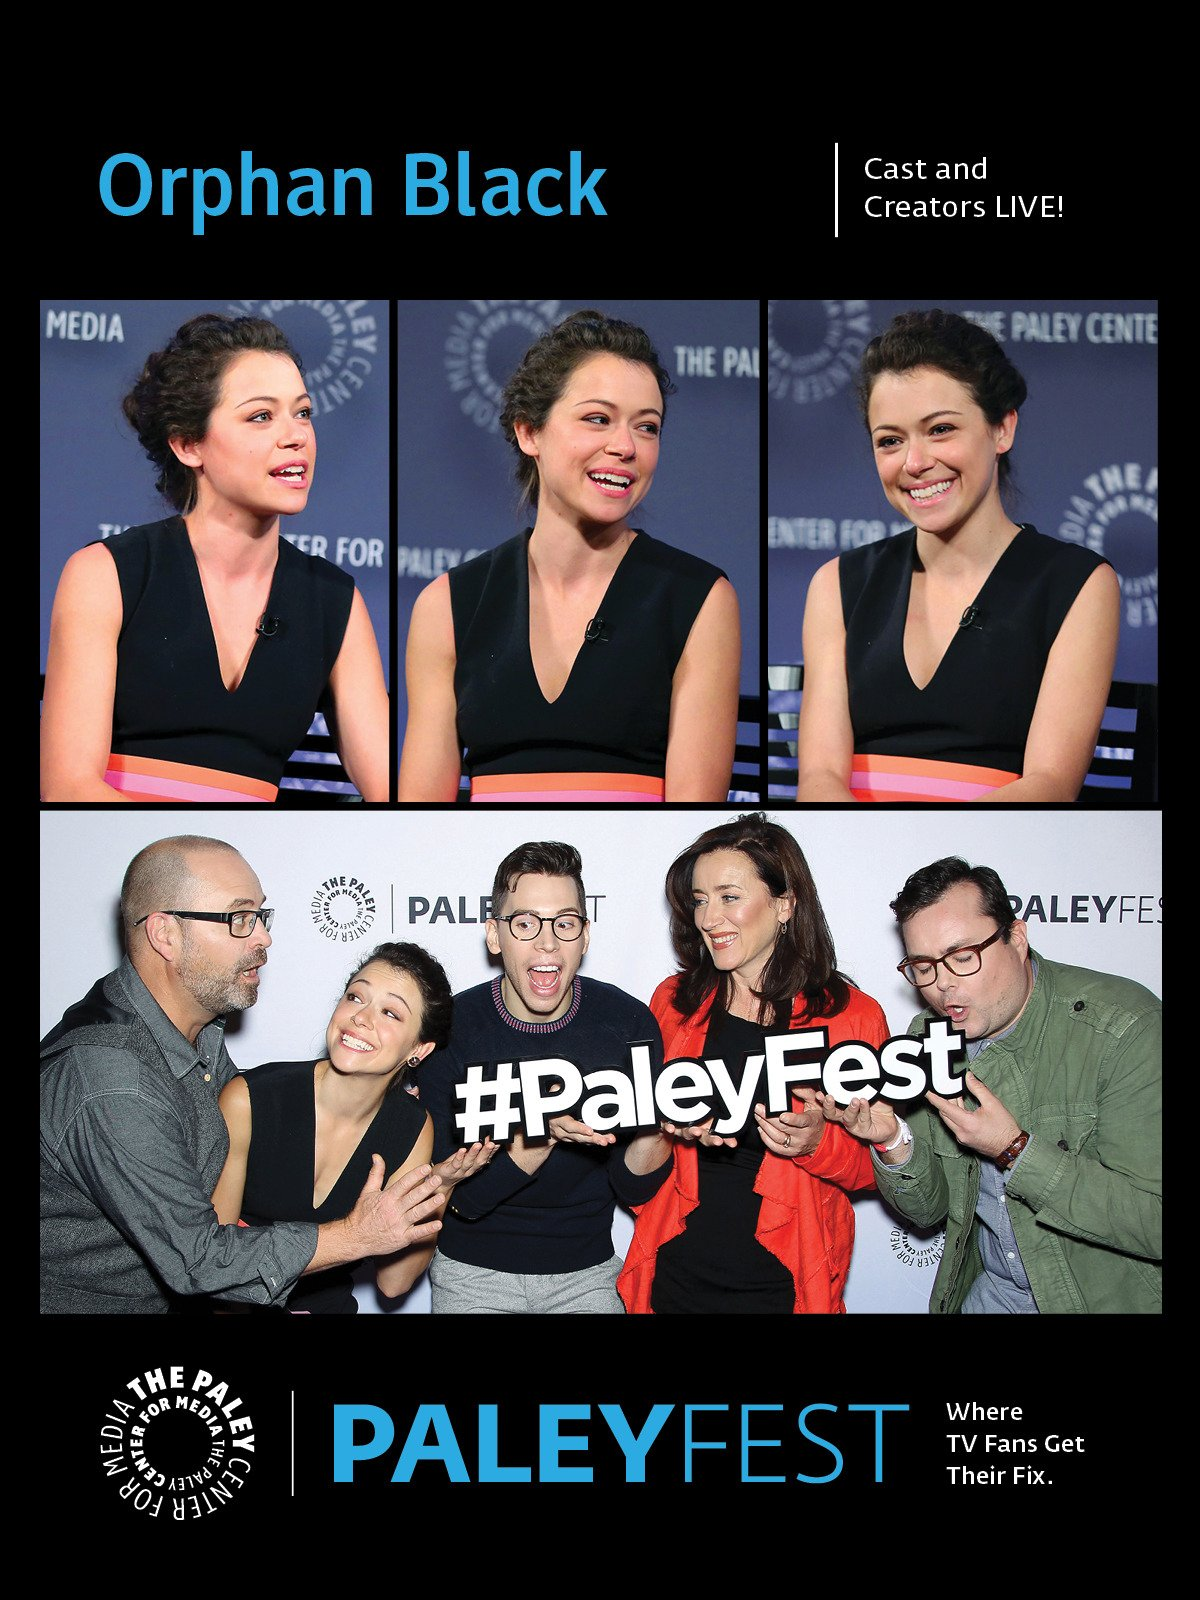 Orphan Black: Cast and Creators Live at PaleyFest NY